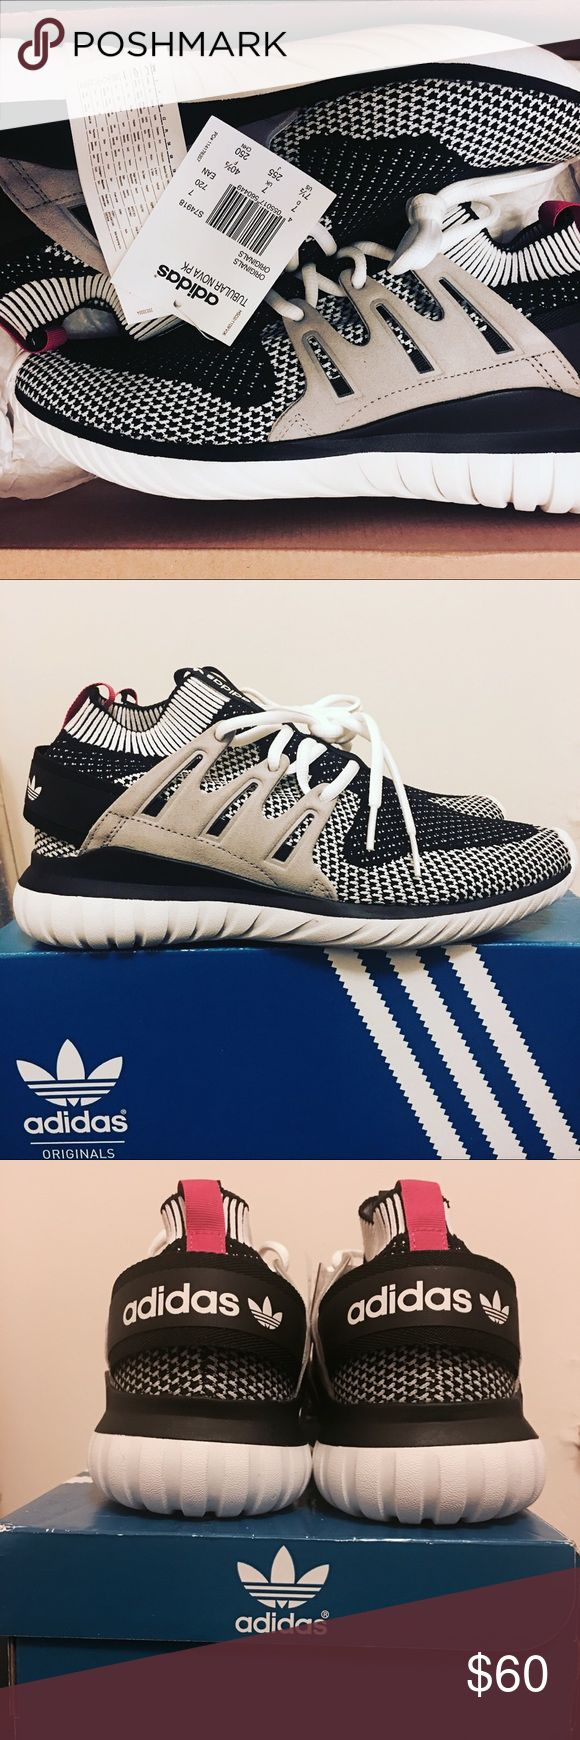 Adidas Tubular Nova Primeknit Brand new Adidas Tubular Nova Primeknit. Never worn. Breathable material makes this a great sneaker for spring, summer, fall. Size 7.5 in men's adidas Shoes Sneakers